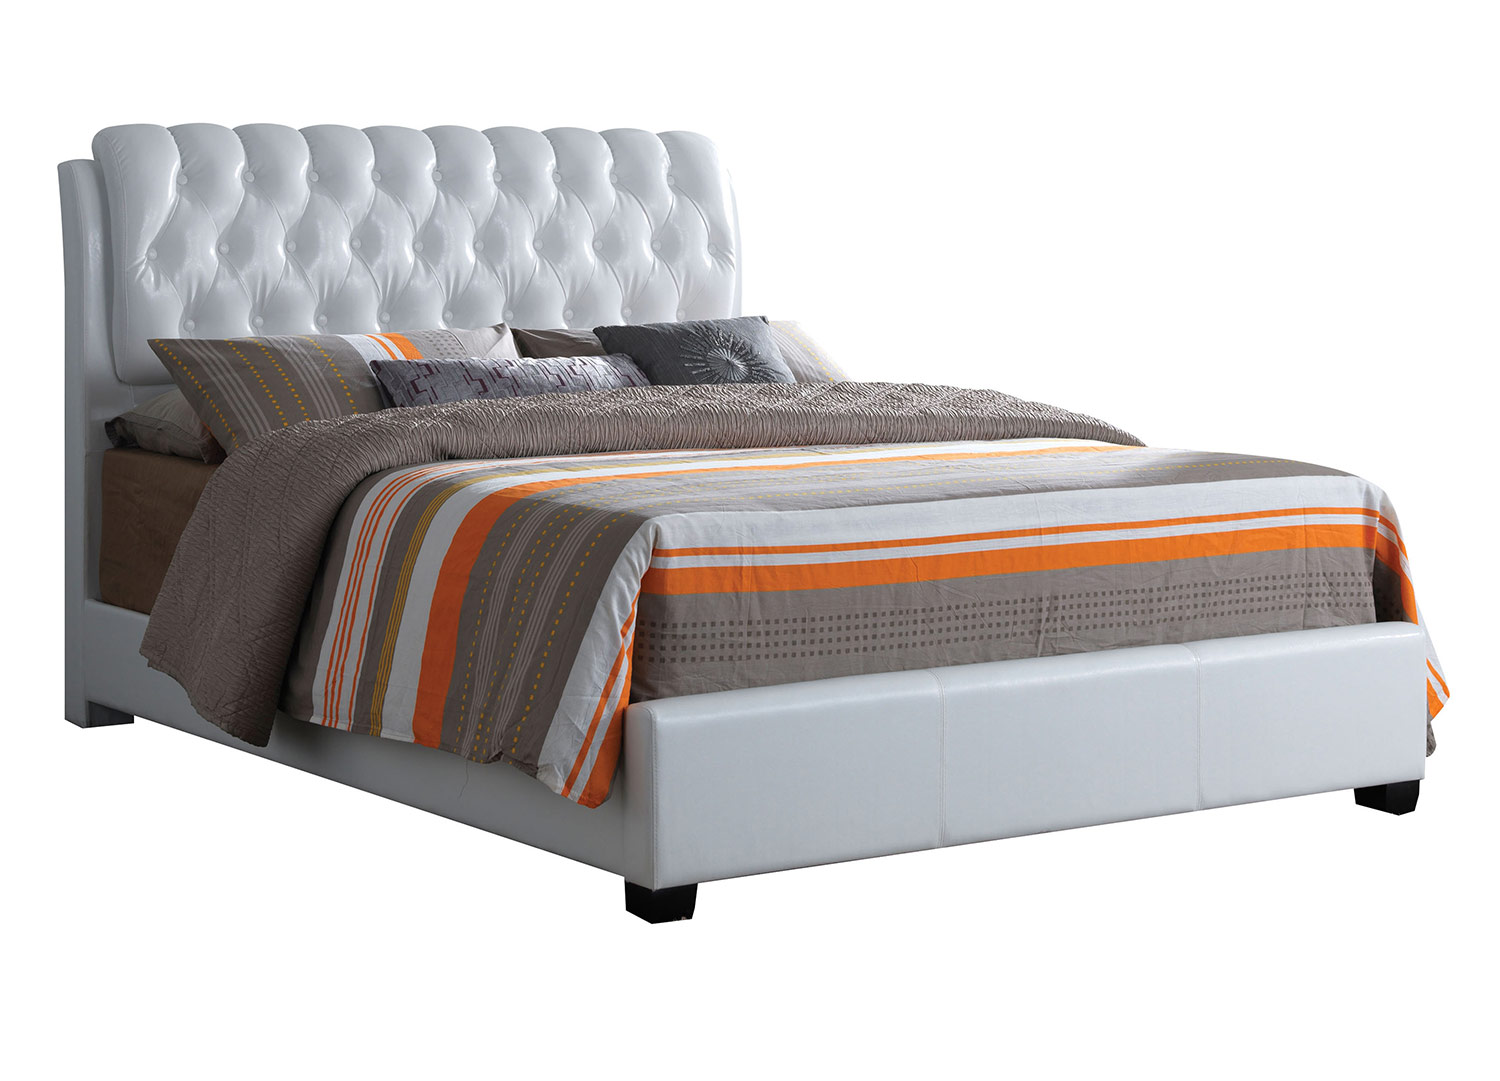 Acme Ireland II Button Tufted Bed - White Vinyl